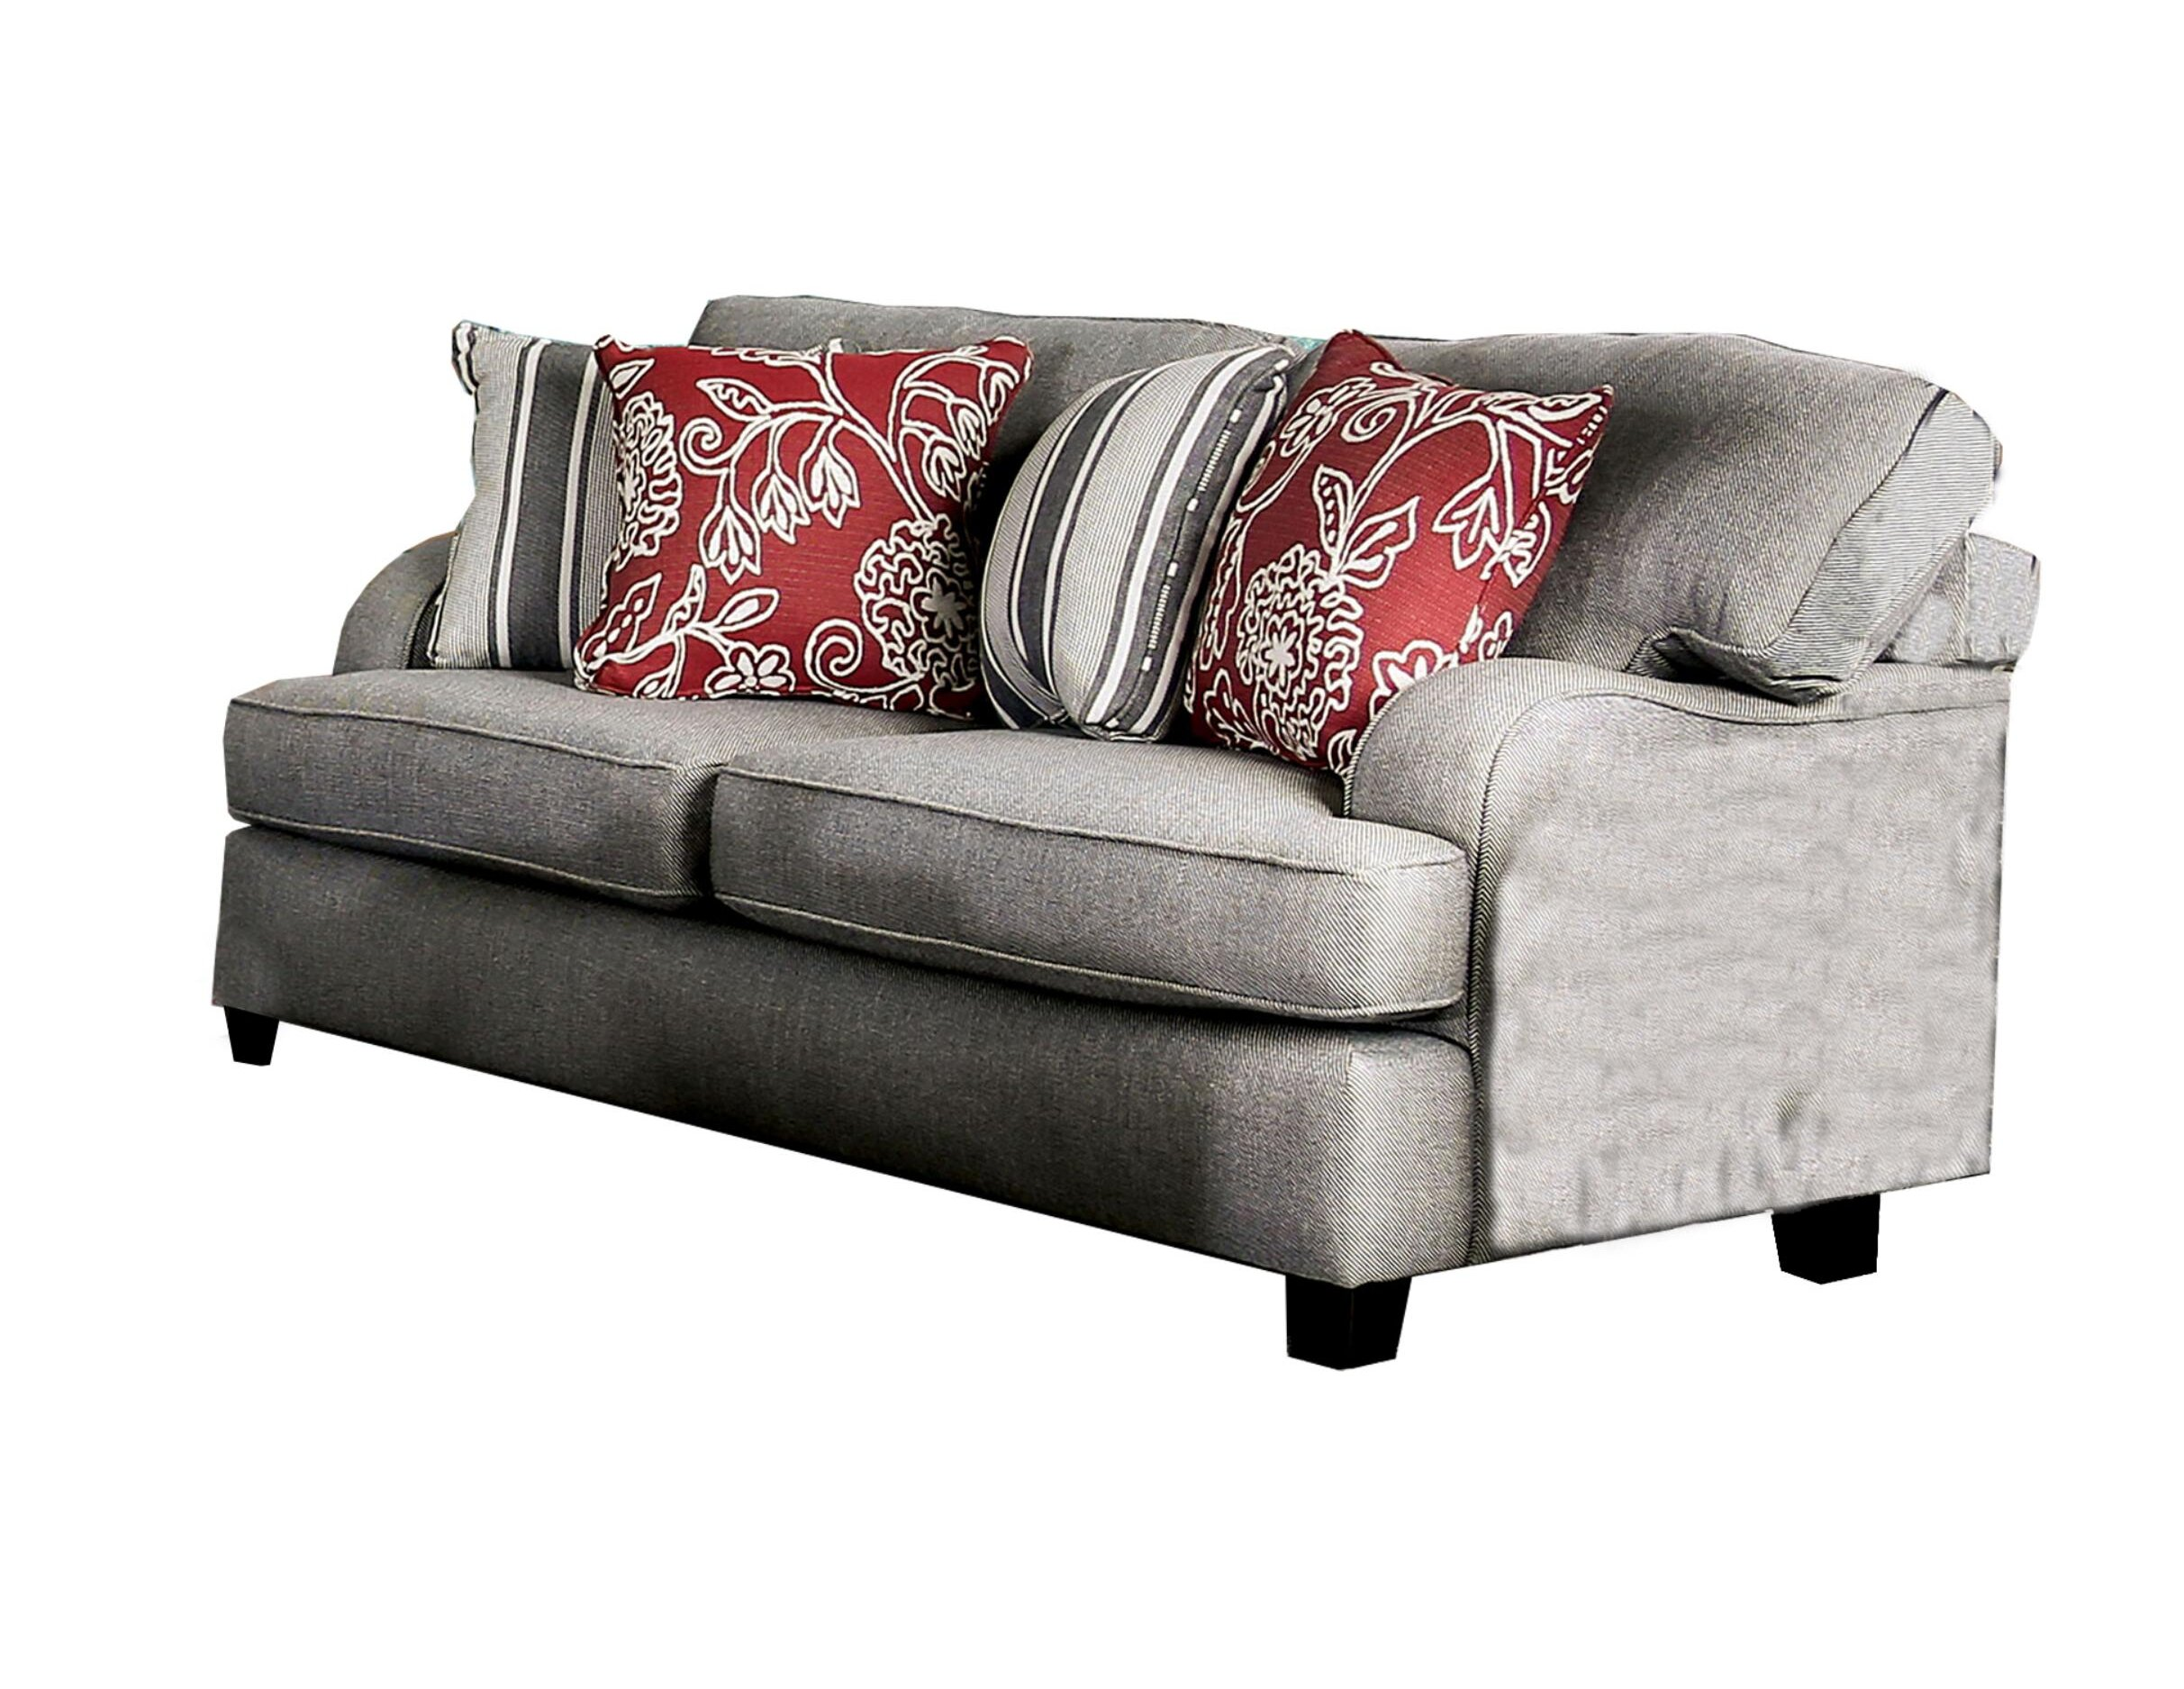 Charles Of London Sofas You Ll Love In 2021 Wayfair